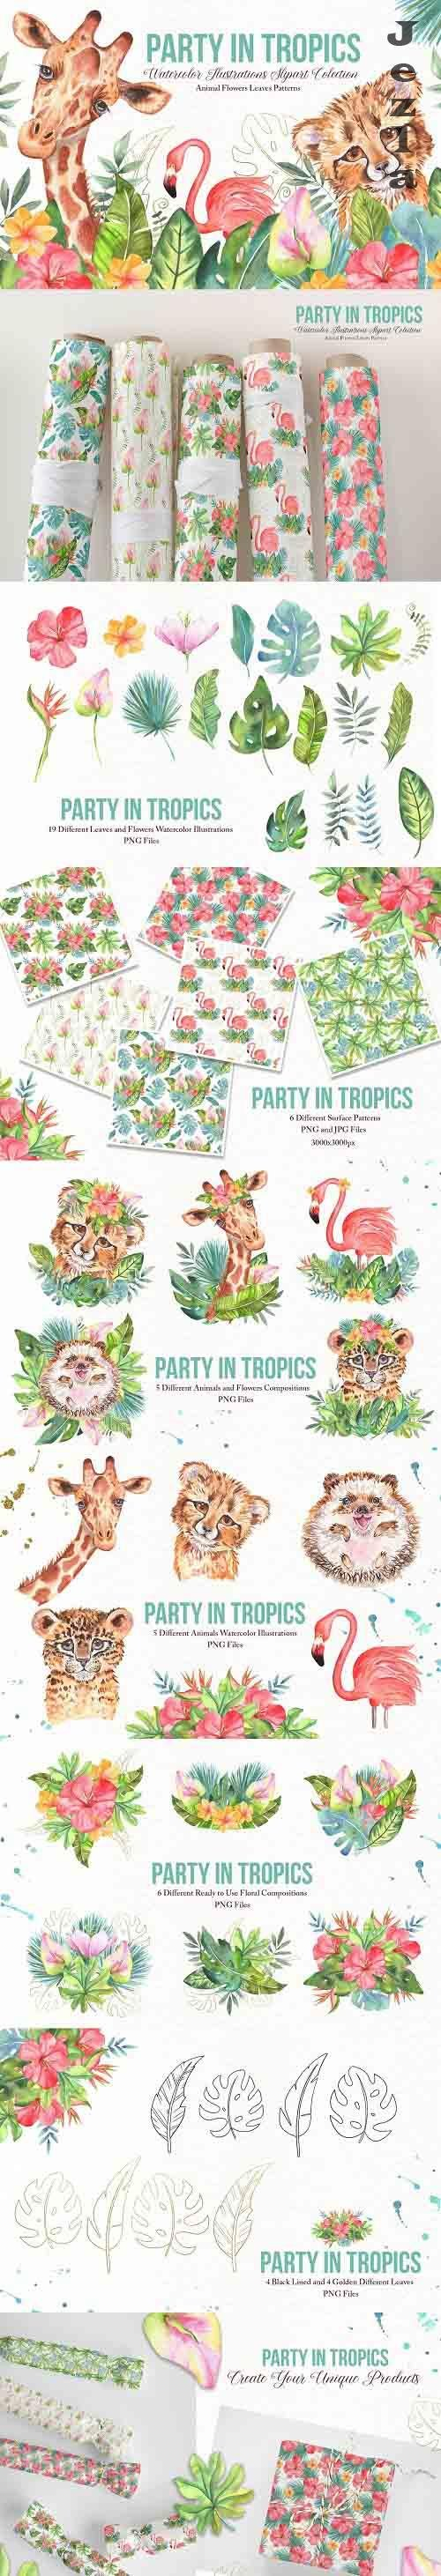 Watercolor Tropical Party - 6091590